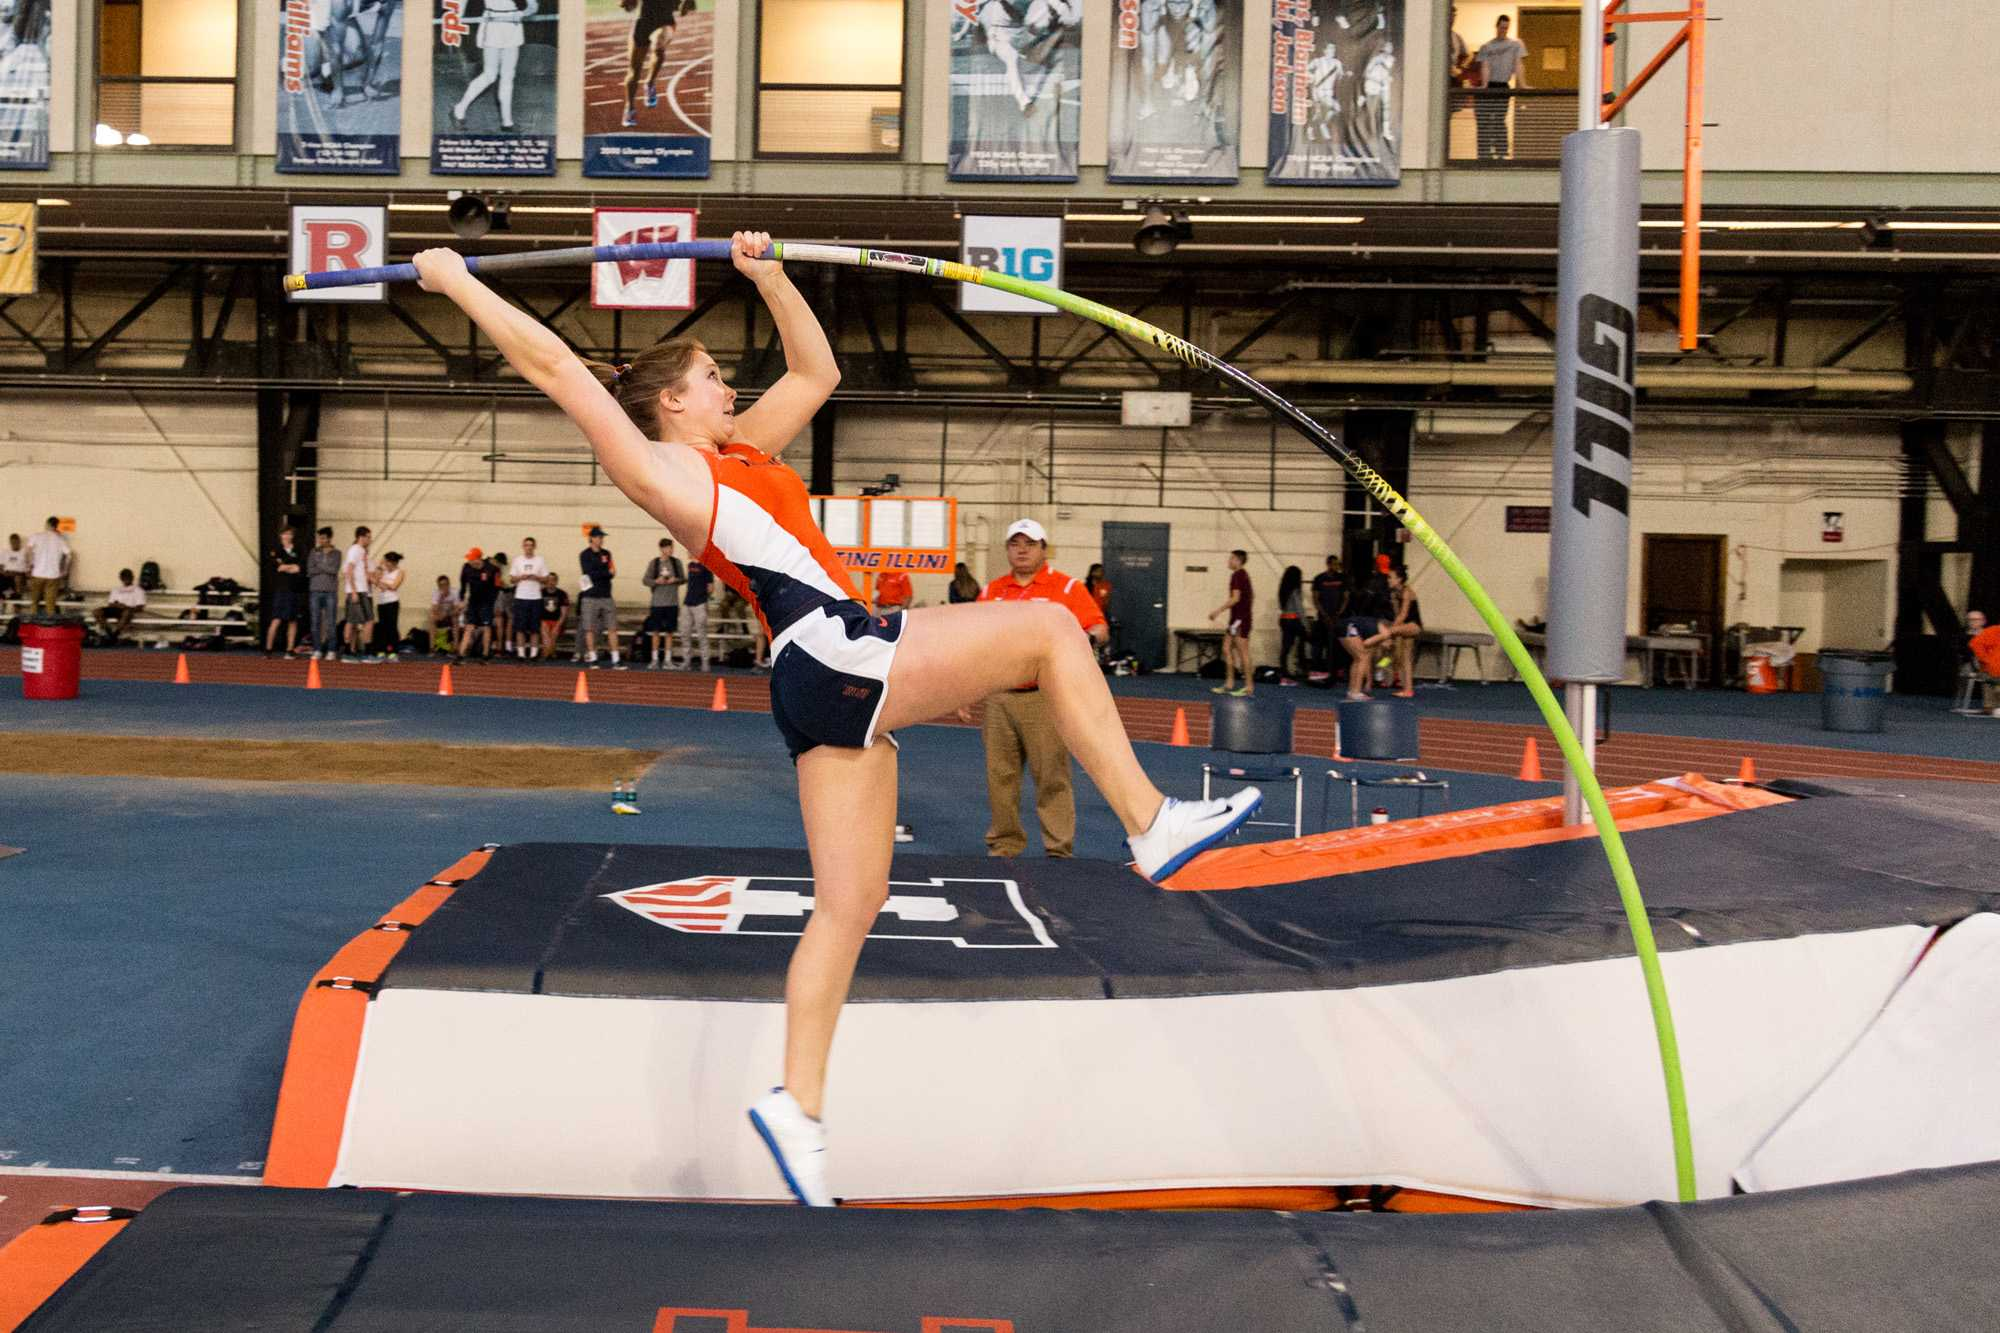 Illinois' Sara McKeeman propels herself into the air during the pole vault event at the Orange and Blue meet on Saturday, February 20, 2016. Blaze placed third in the pole vault with a height of 3.97 meters.